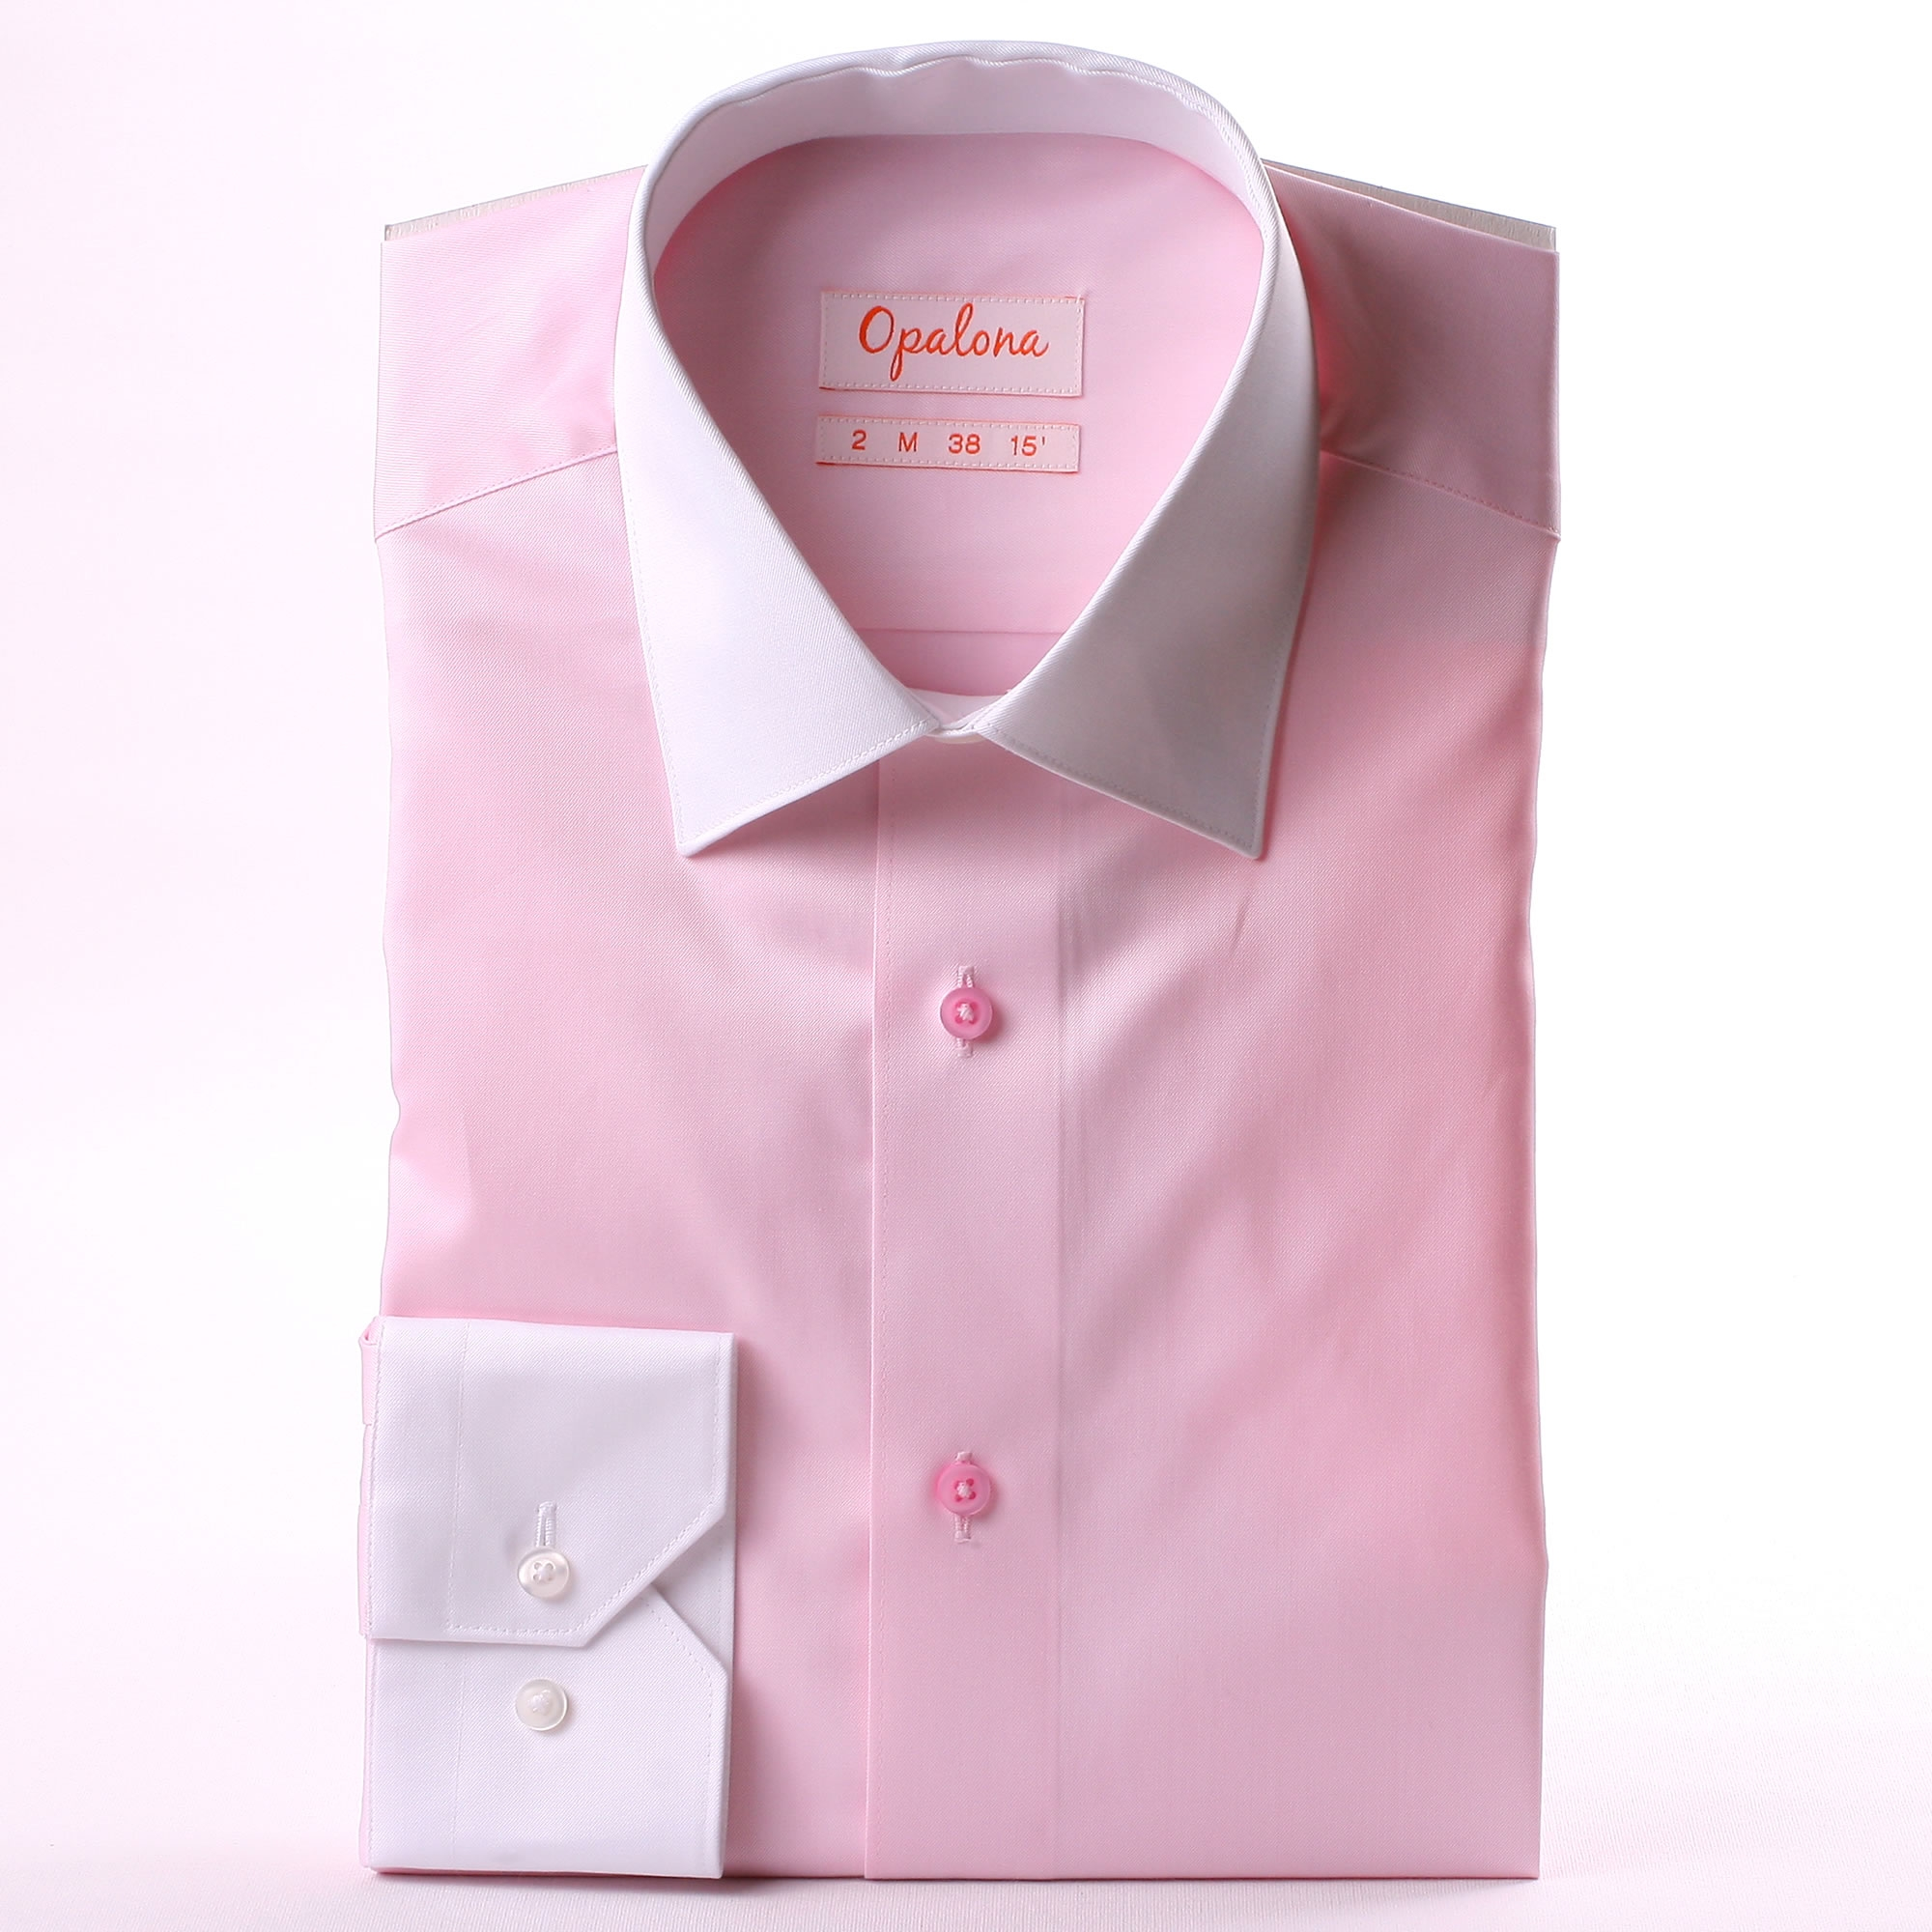 Pink Shirt With White Collar And Cuffs